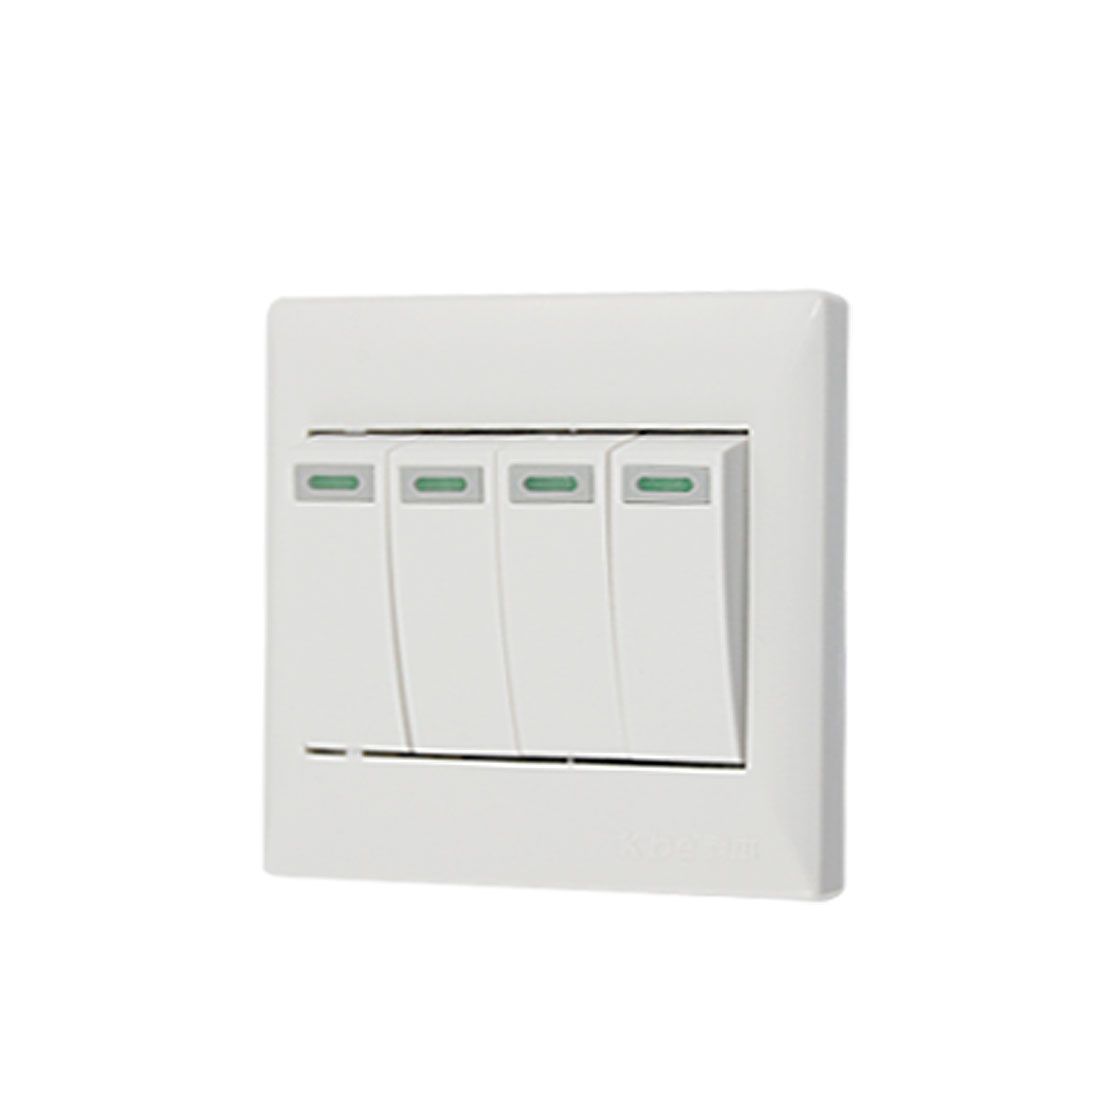 Plastic Replacement SPST On/Off 4 Gang Wall Switch Plate